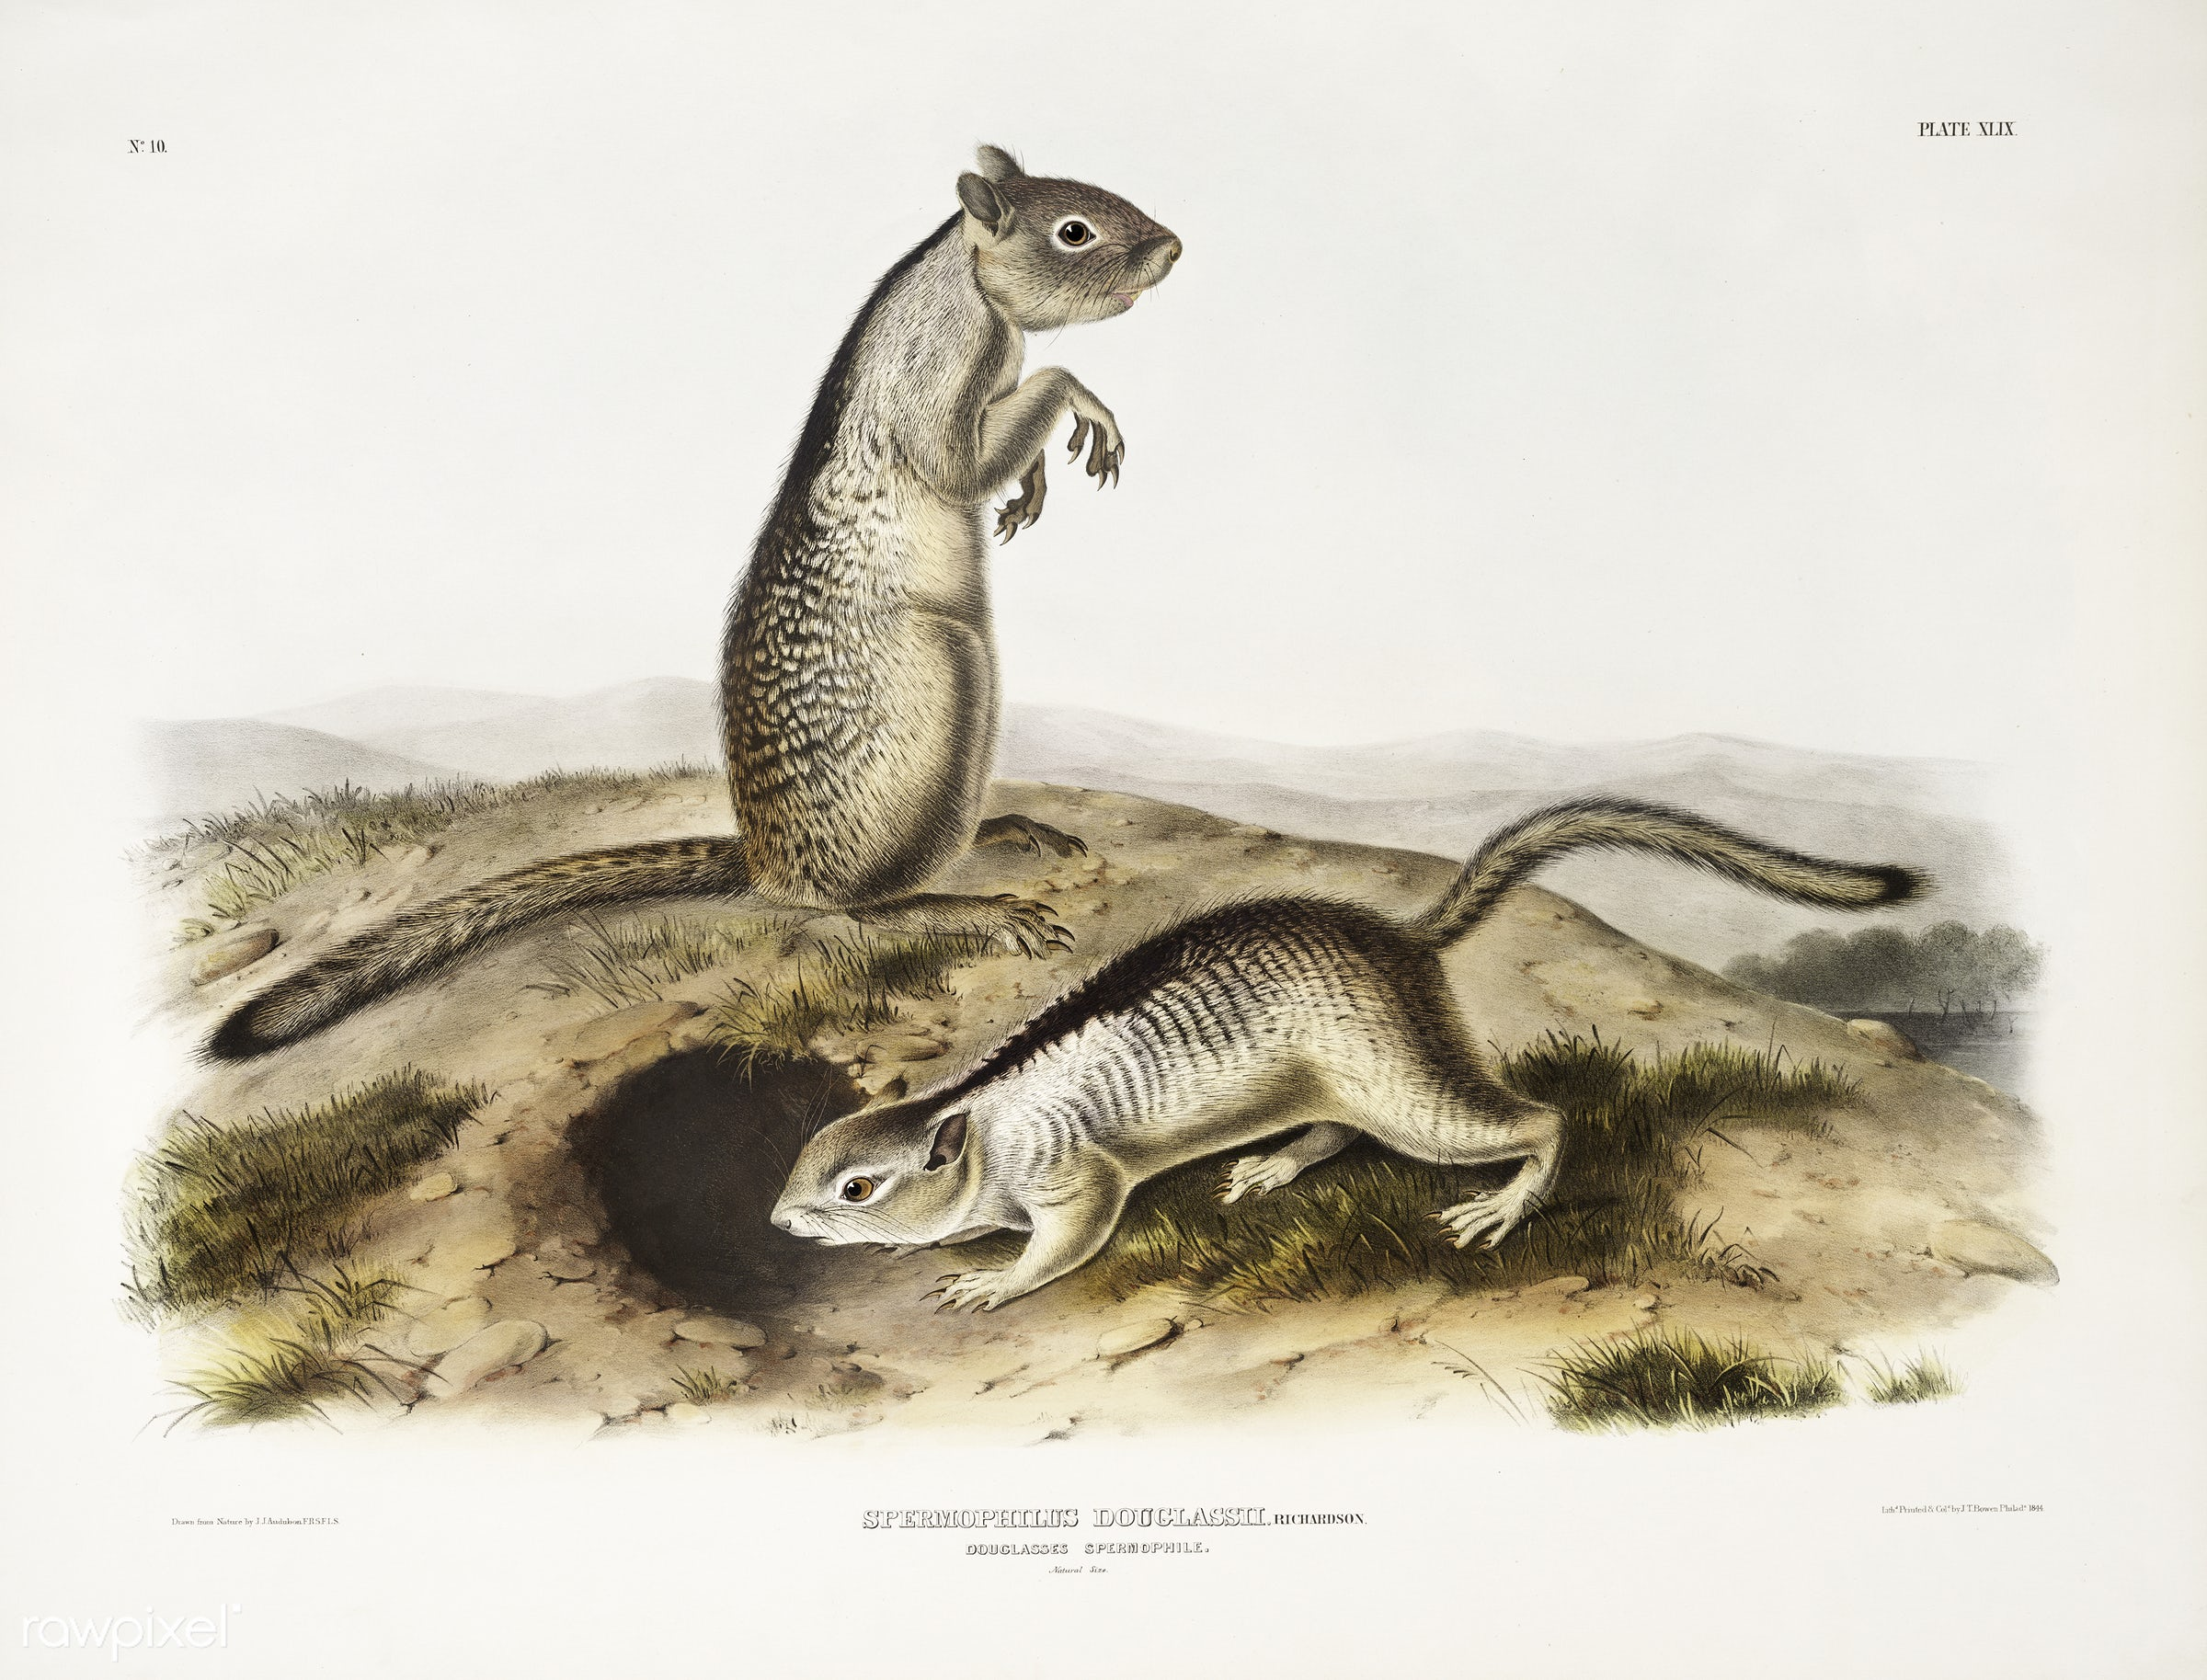 Douglasse's Spermophile (Spermophilus Douglassii) from the viviparous quadrupeds of North America (1845) illustrated by...